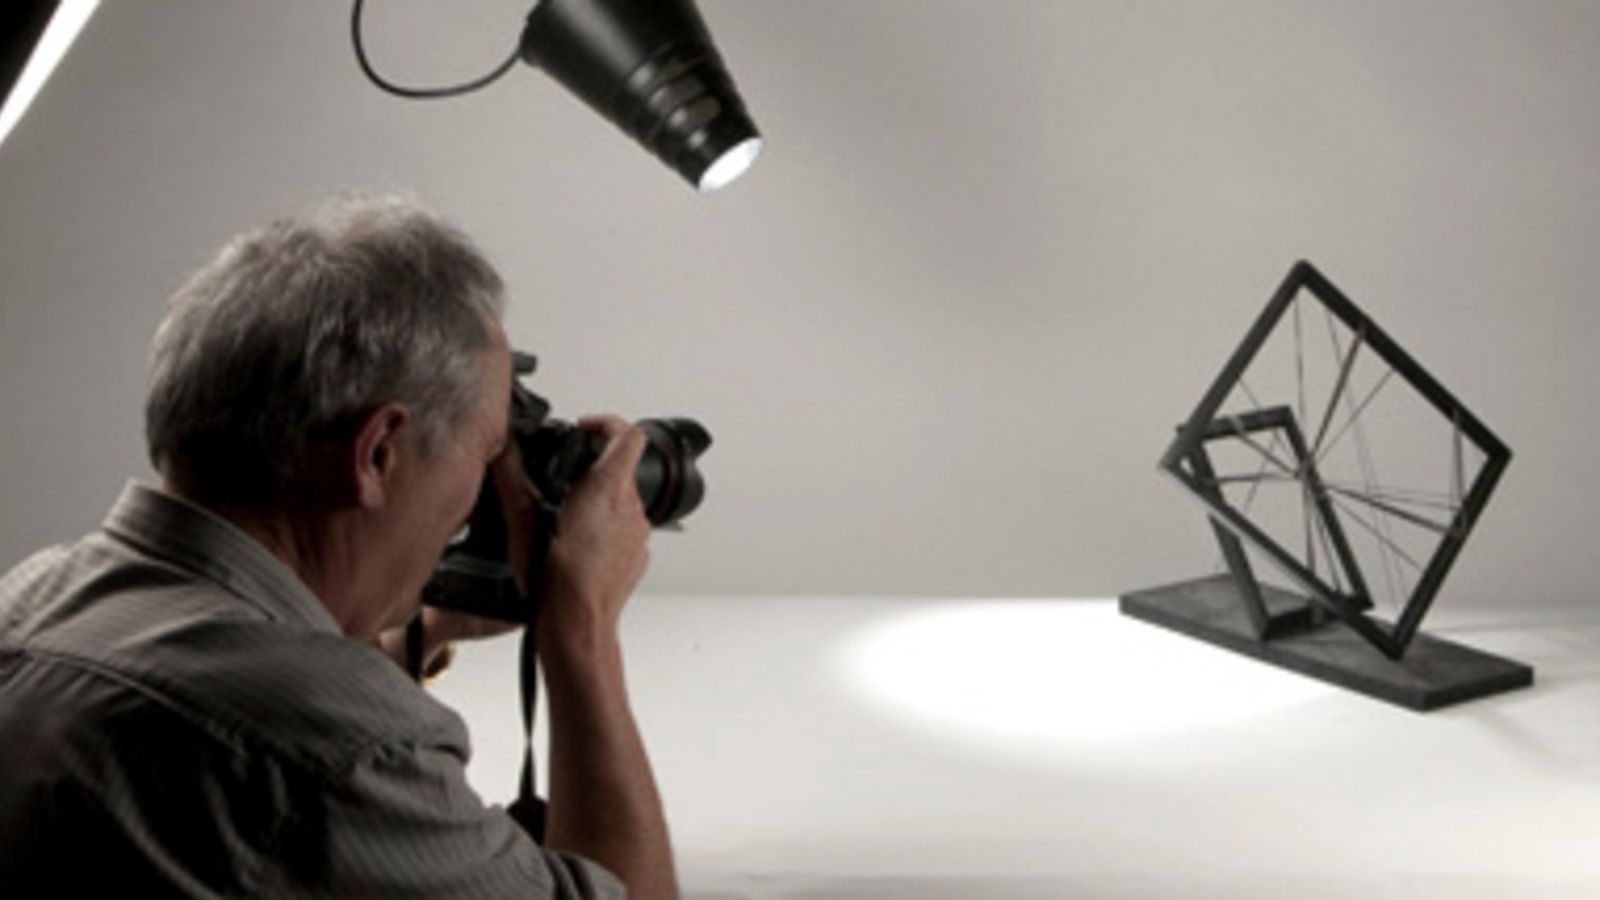 A man takes a photo of an abstract object in a photo studio